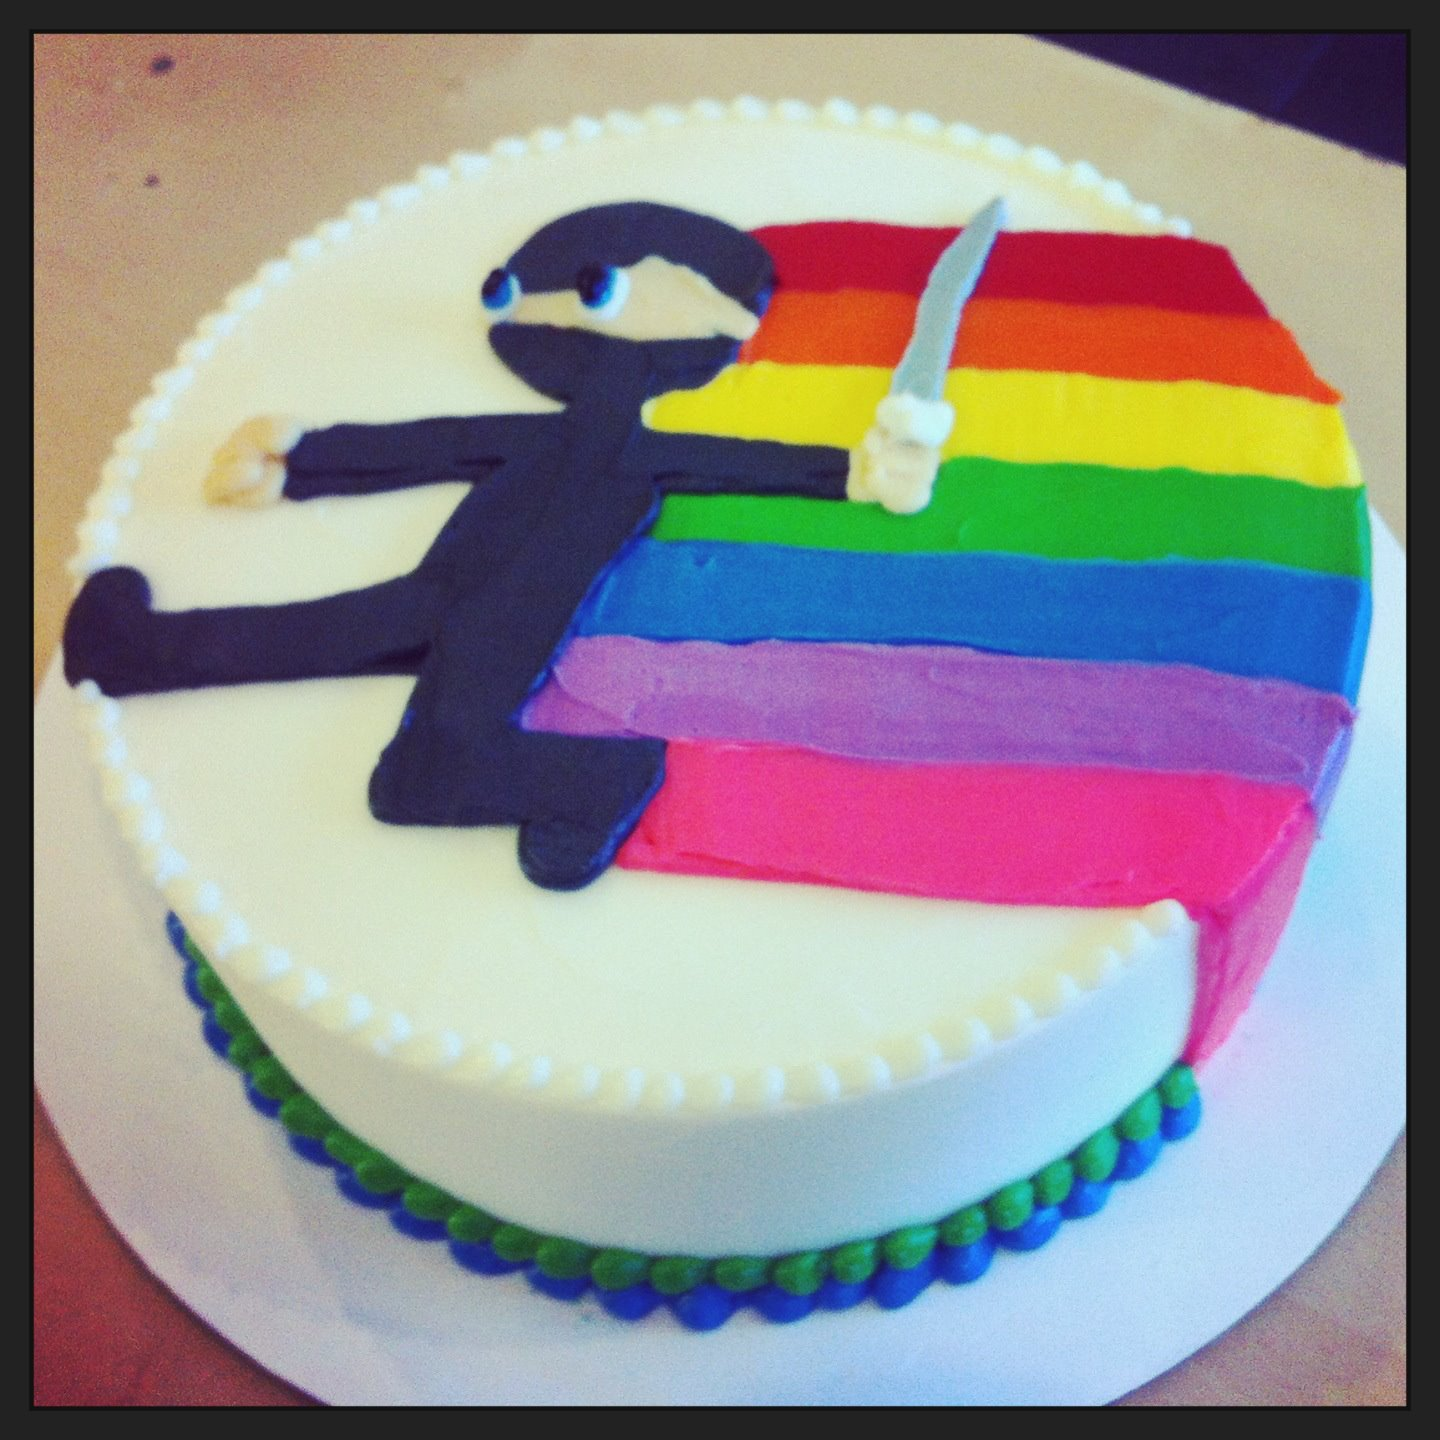 rainbow ninja cake - Hayley Cakes and CookiesHayley Cakes